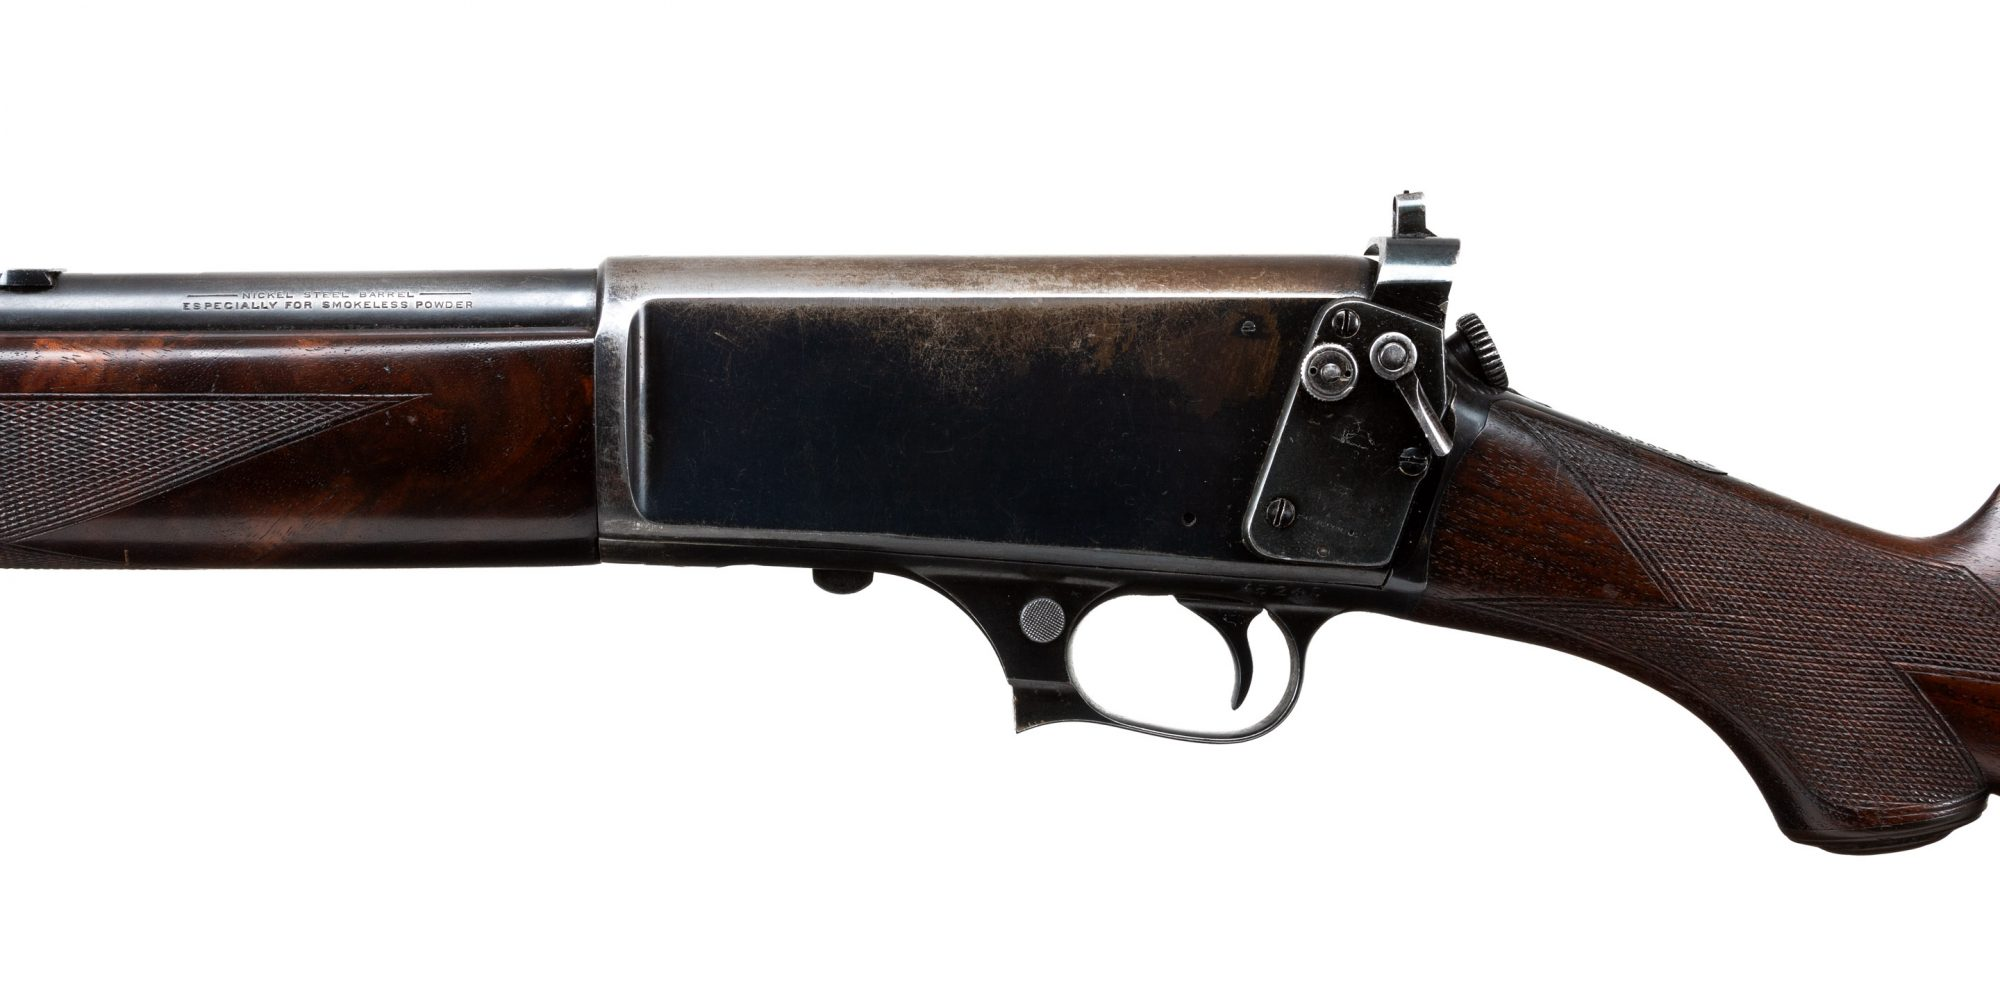 Photo of a pre-owned Winchester Model 1907, for sale through Turnbull Restoration